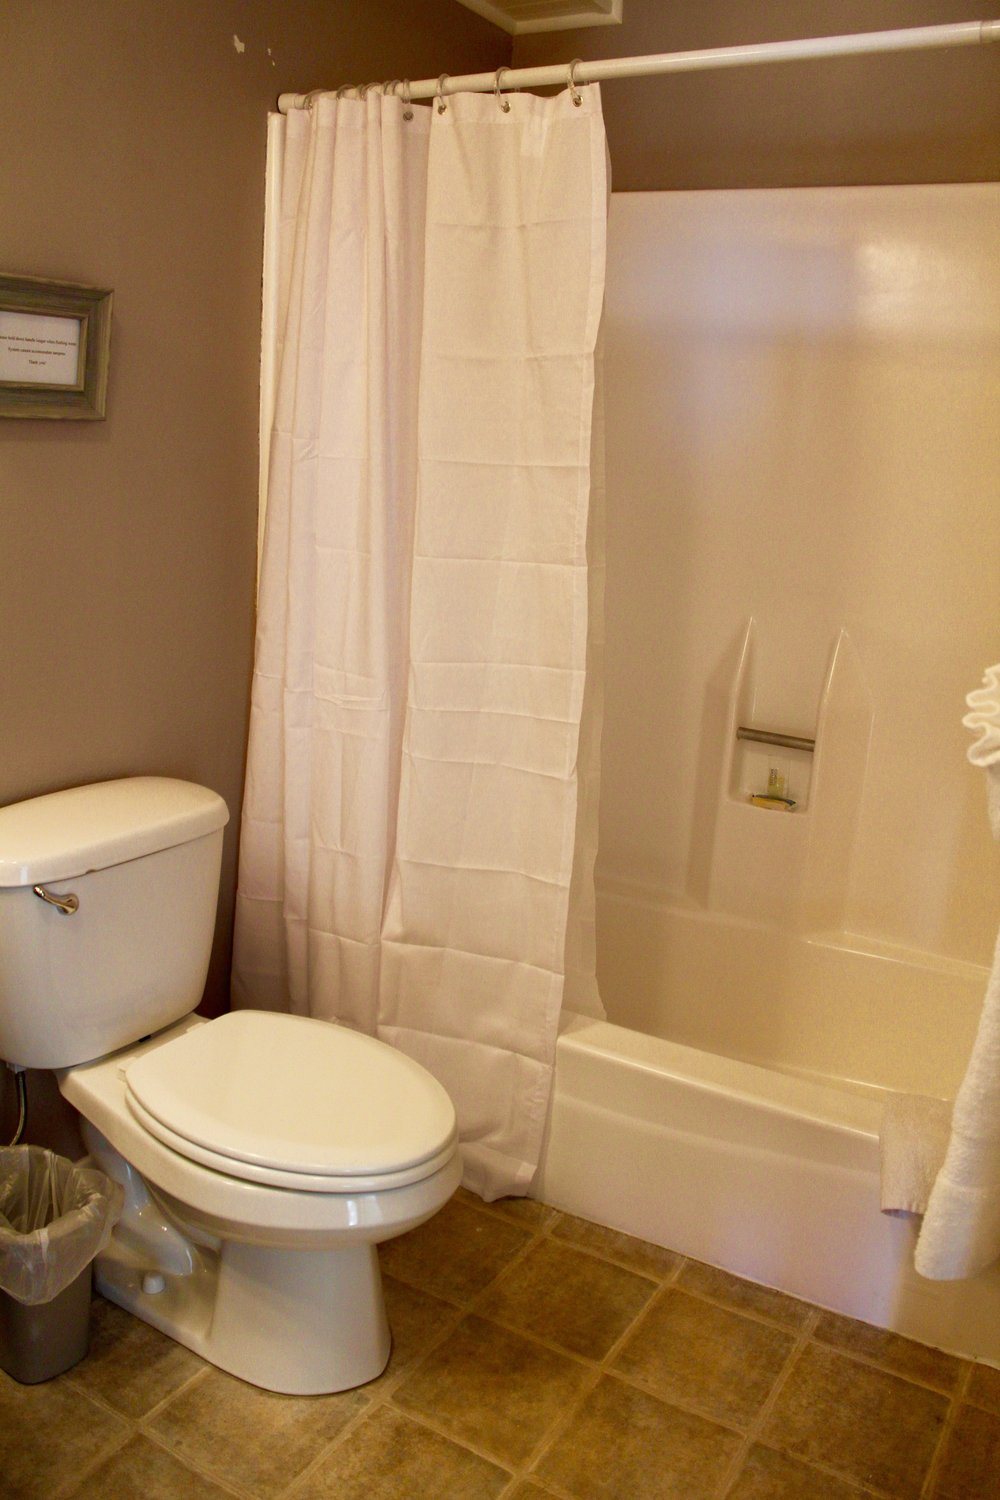 Unit 4 Shower and Tub.JPG